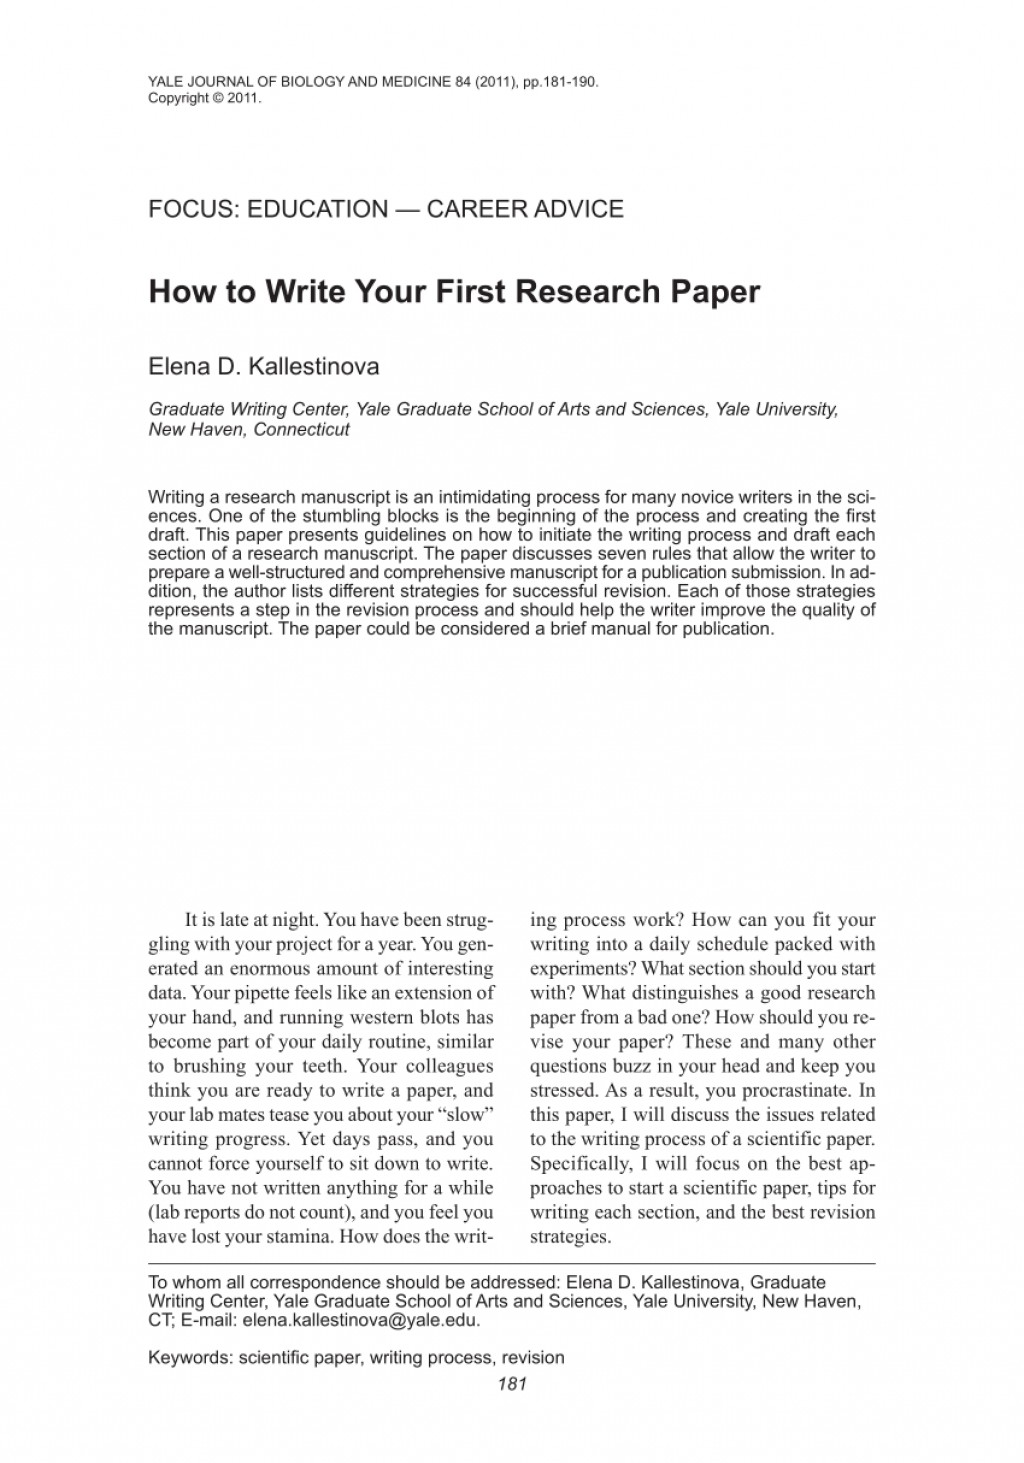 007 Steps In Writing The Research Paper Pdf Wonderful 10 Markman Large